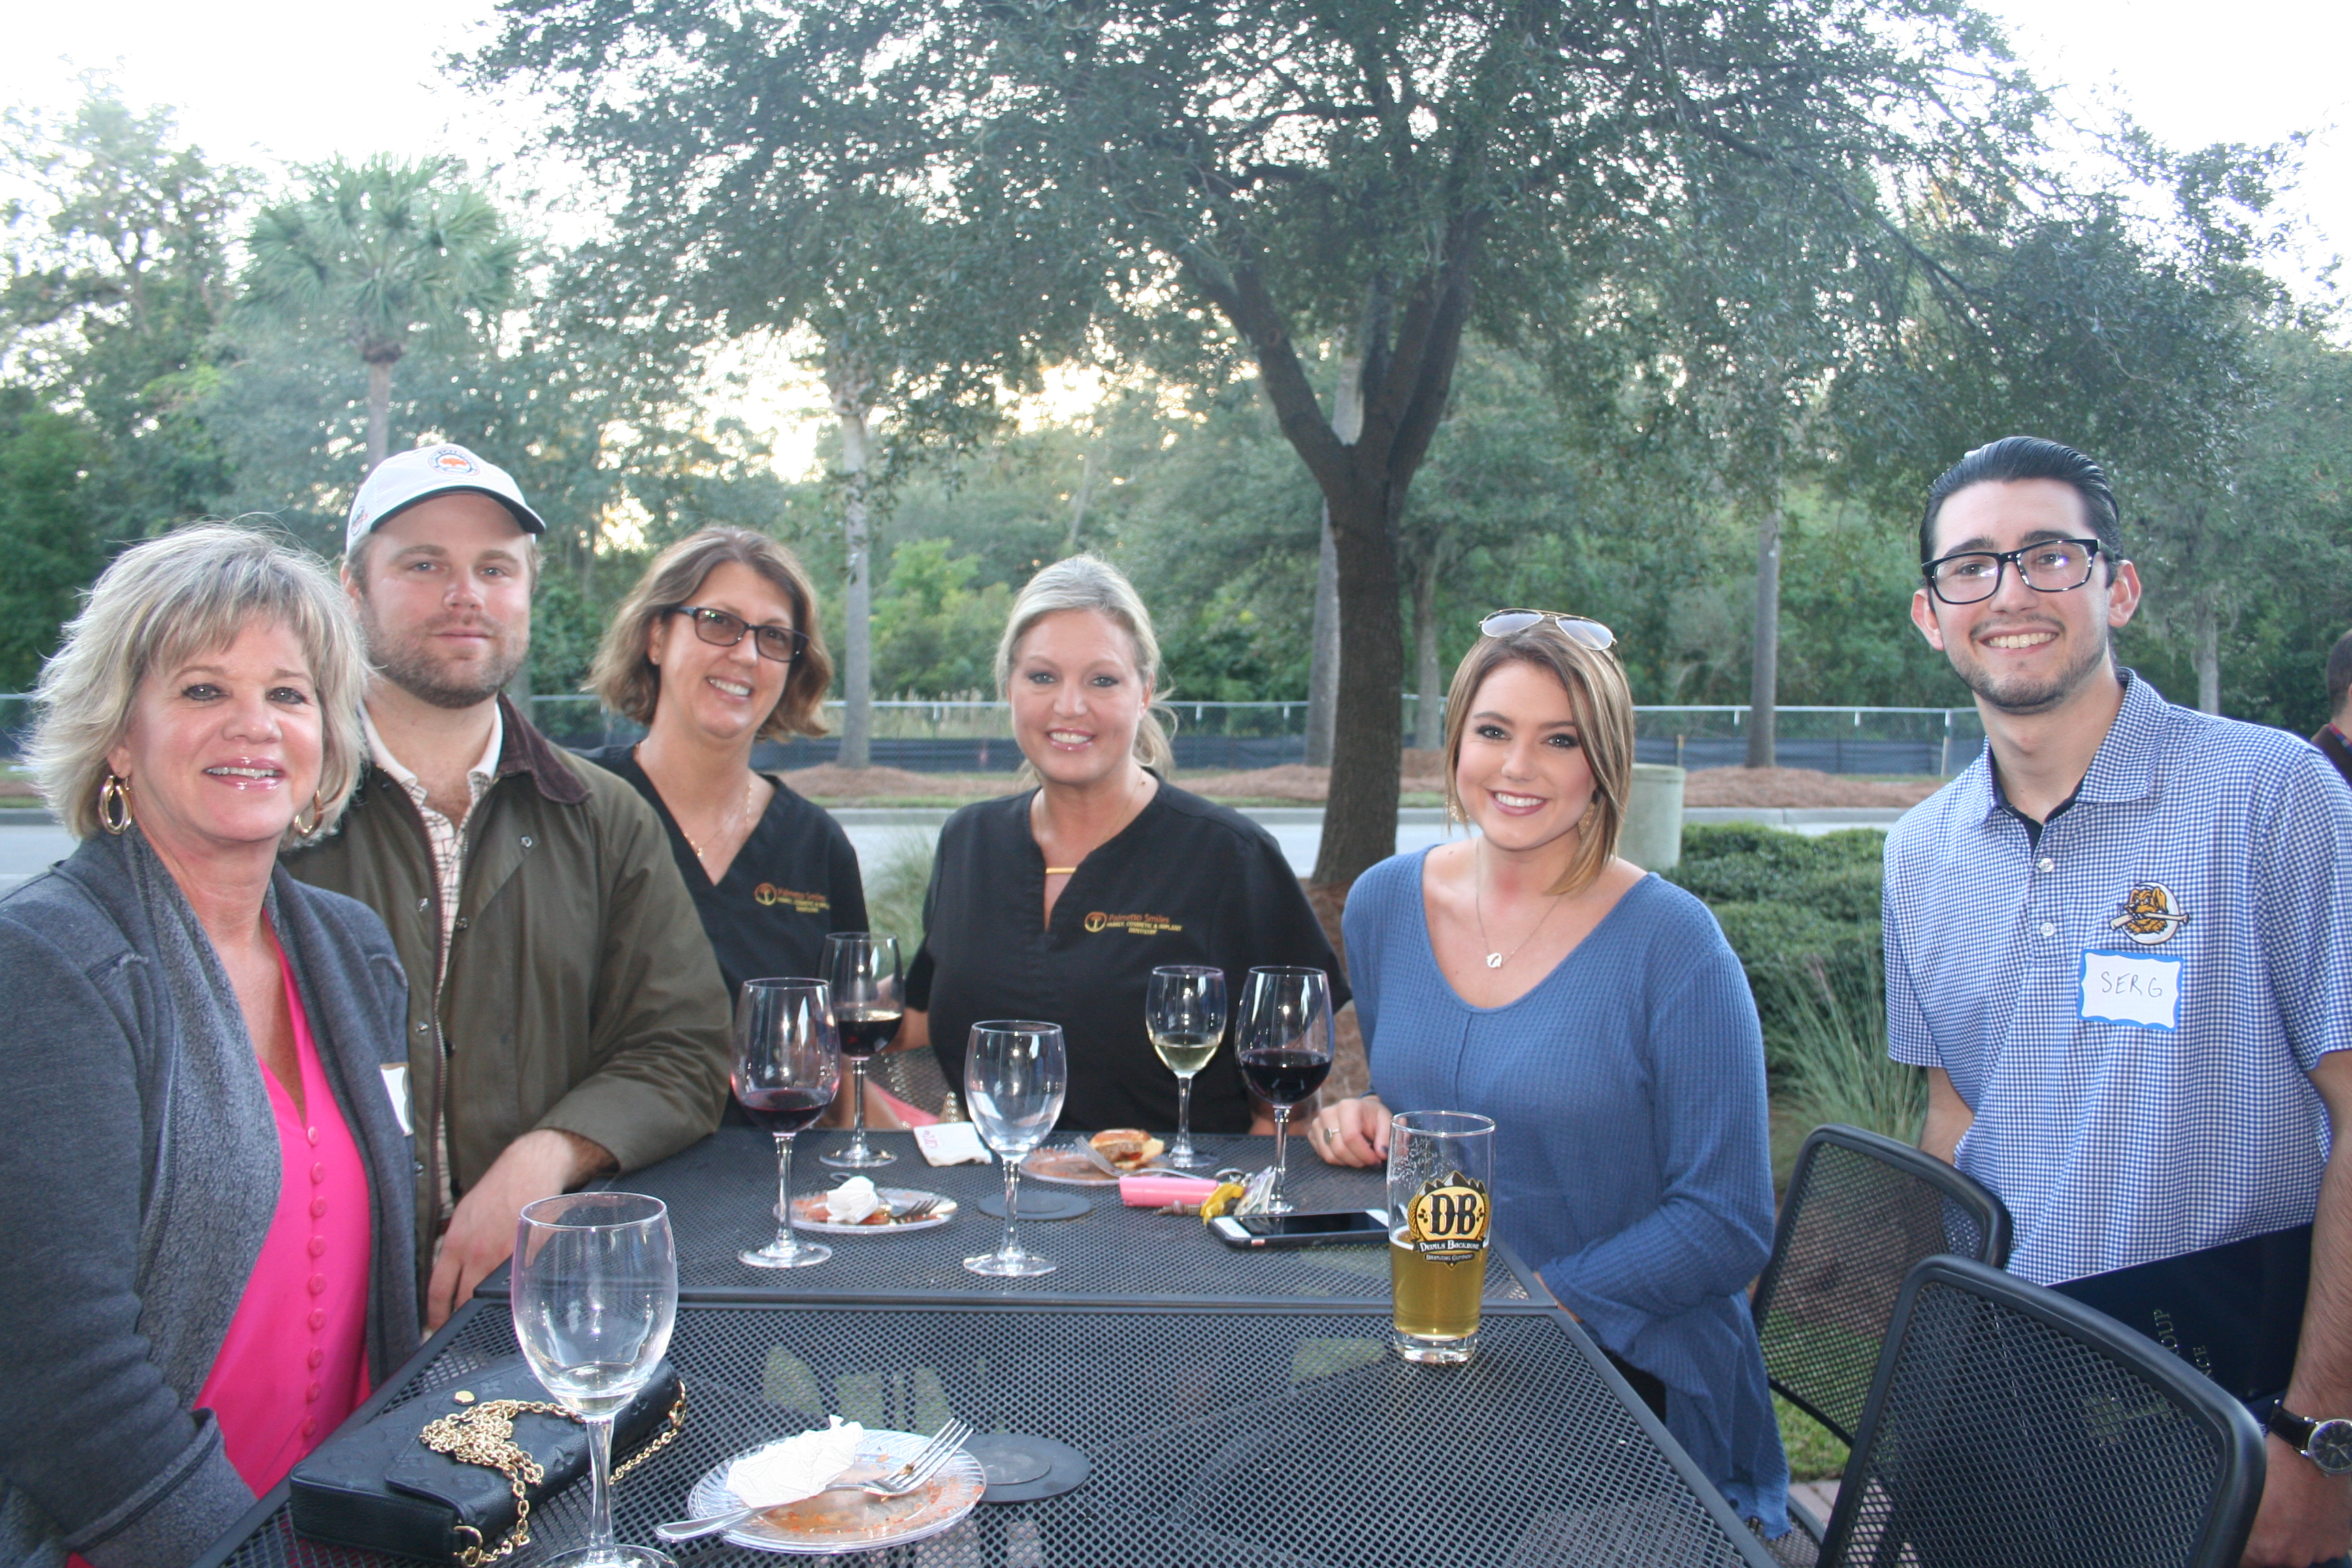 Rick Dolin, Andrew Thomas, Nancy Demott, Perri Fry, Caroline Thomas and Serg Saradjian share food, drink and fun at a LIDI outside table during the Daniel Island Business Association Block Party on Oct. 26.